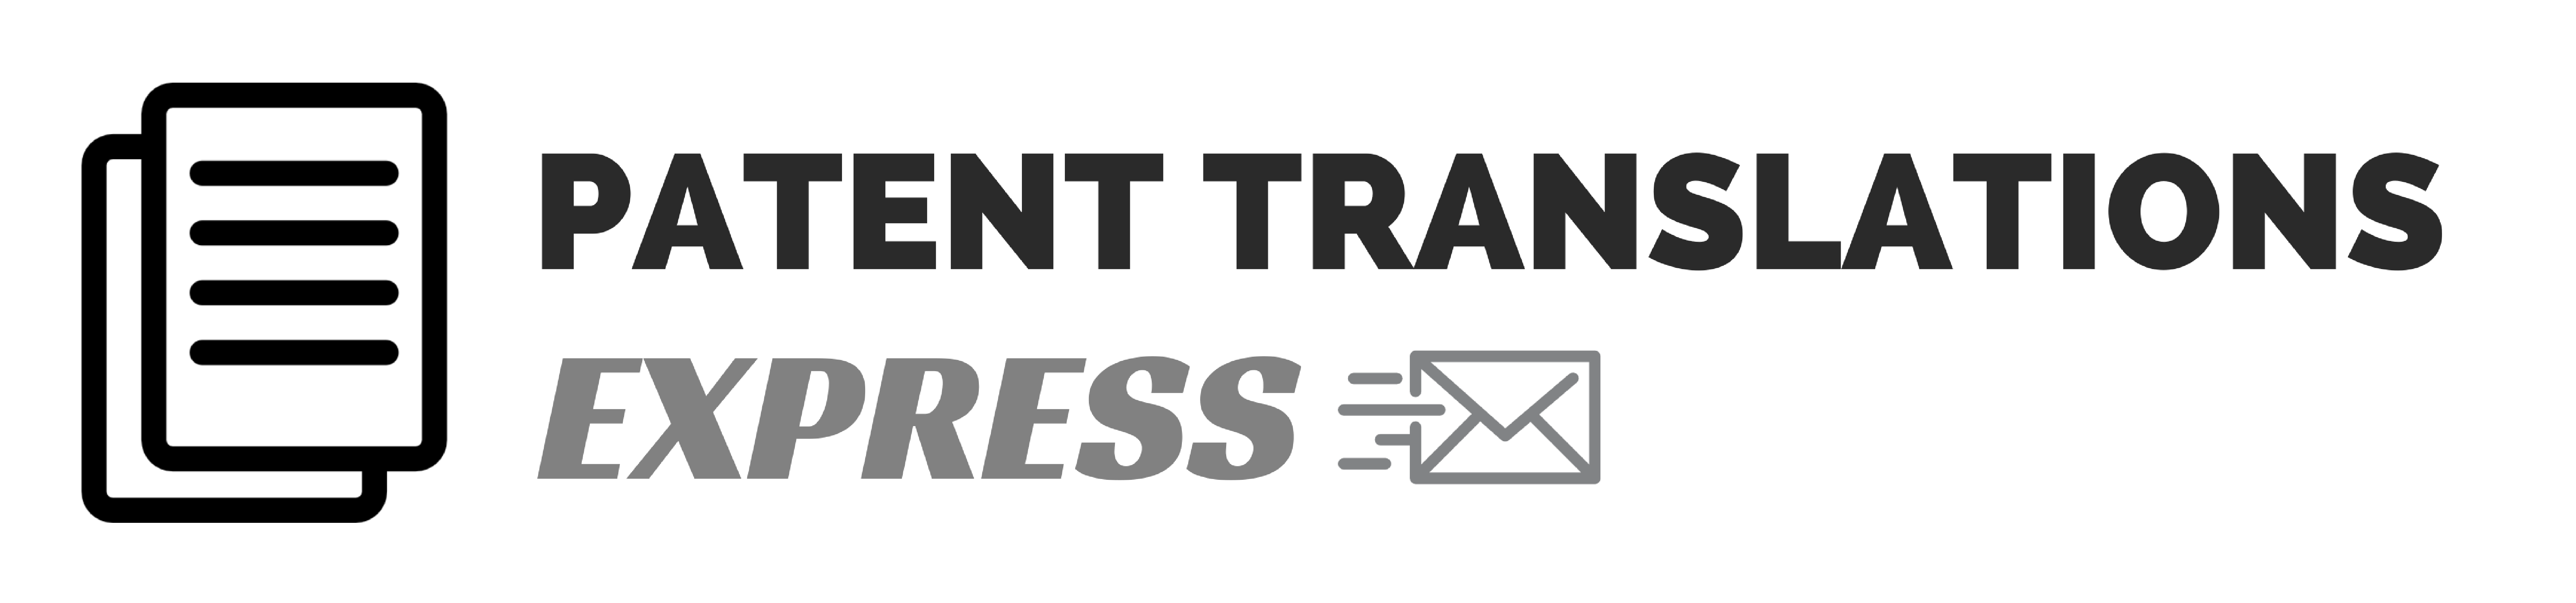 Patent Translations Express